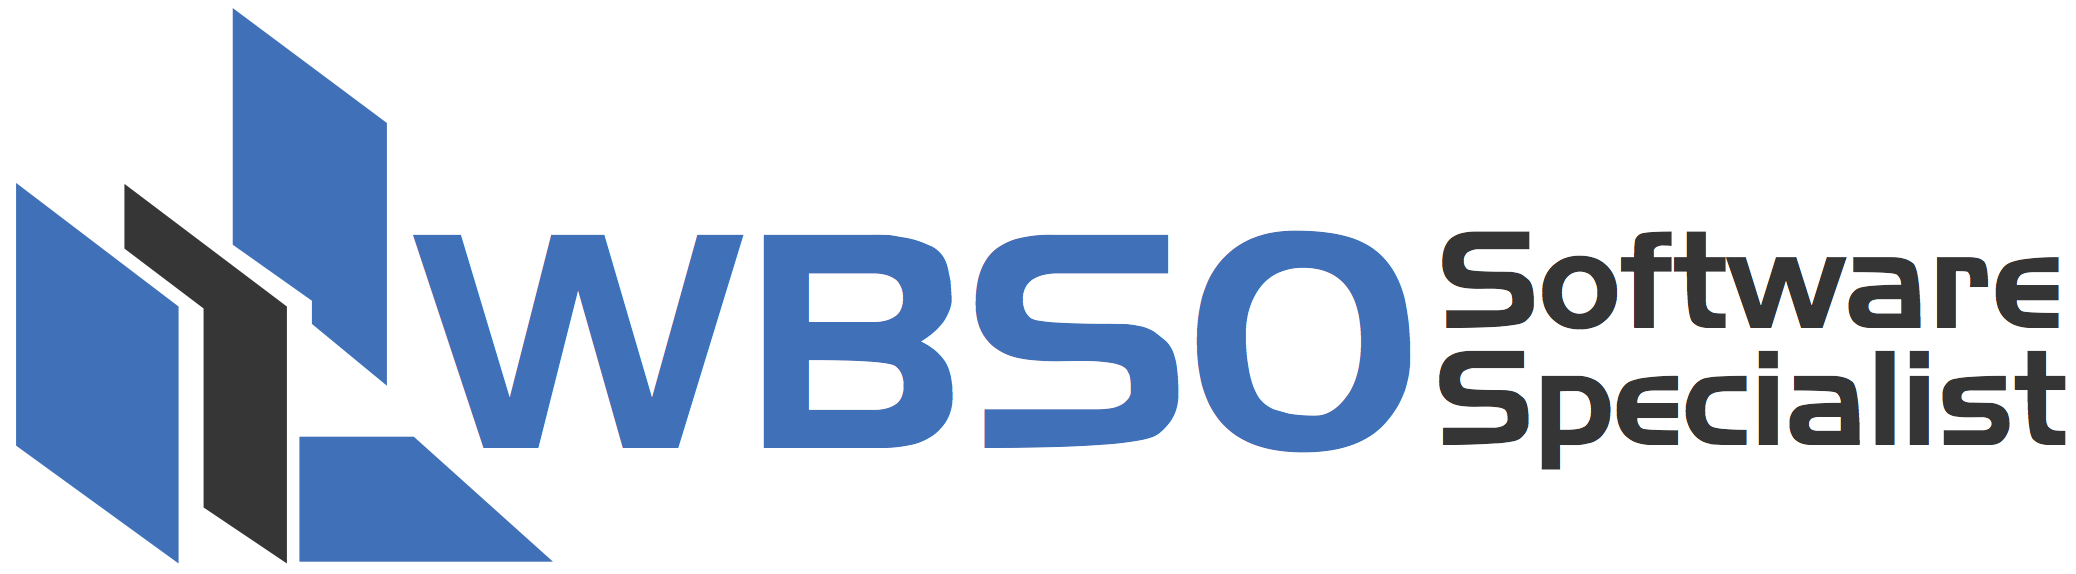 WBSO Software Specialist